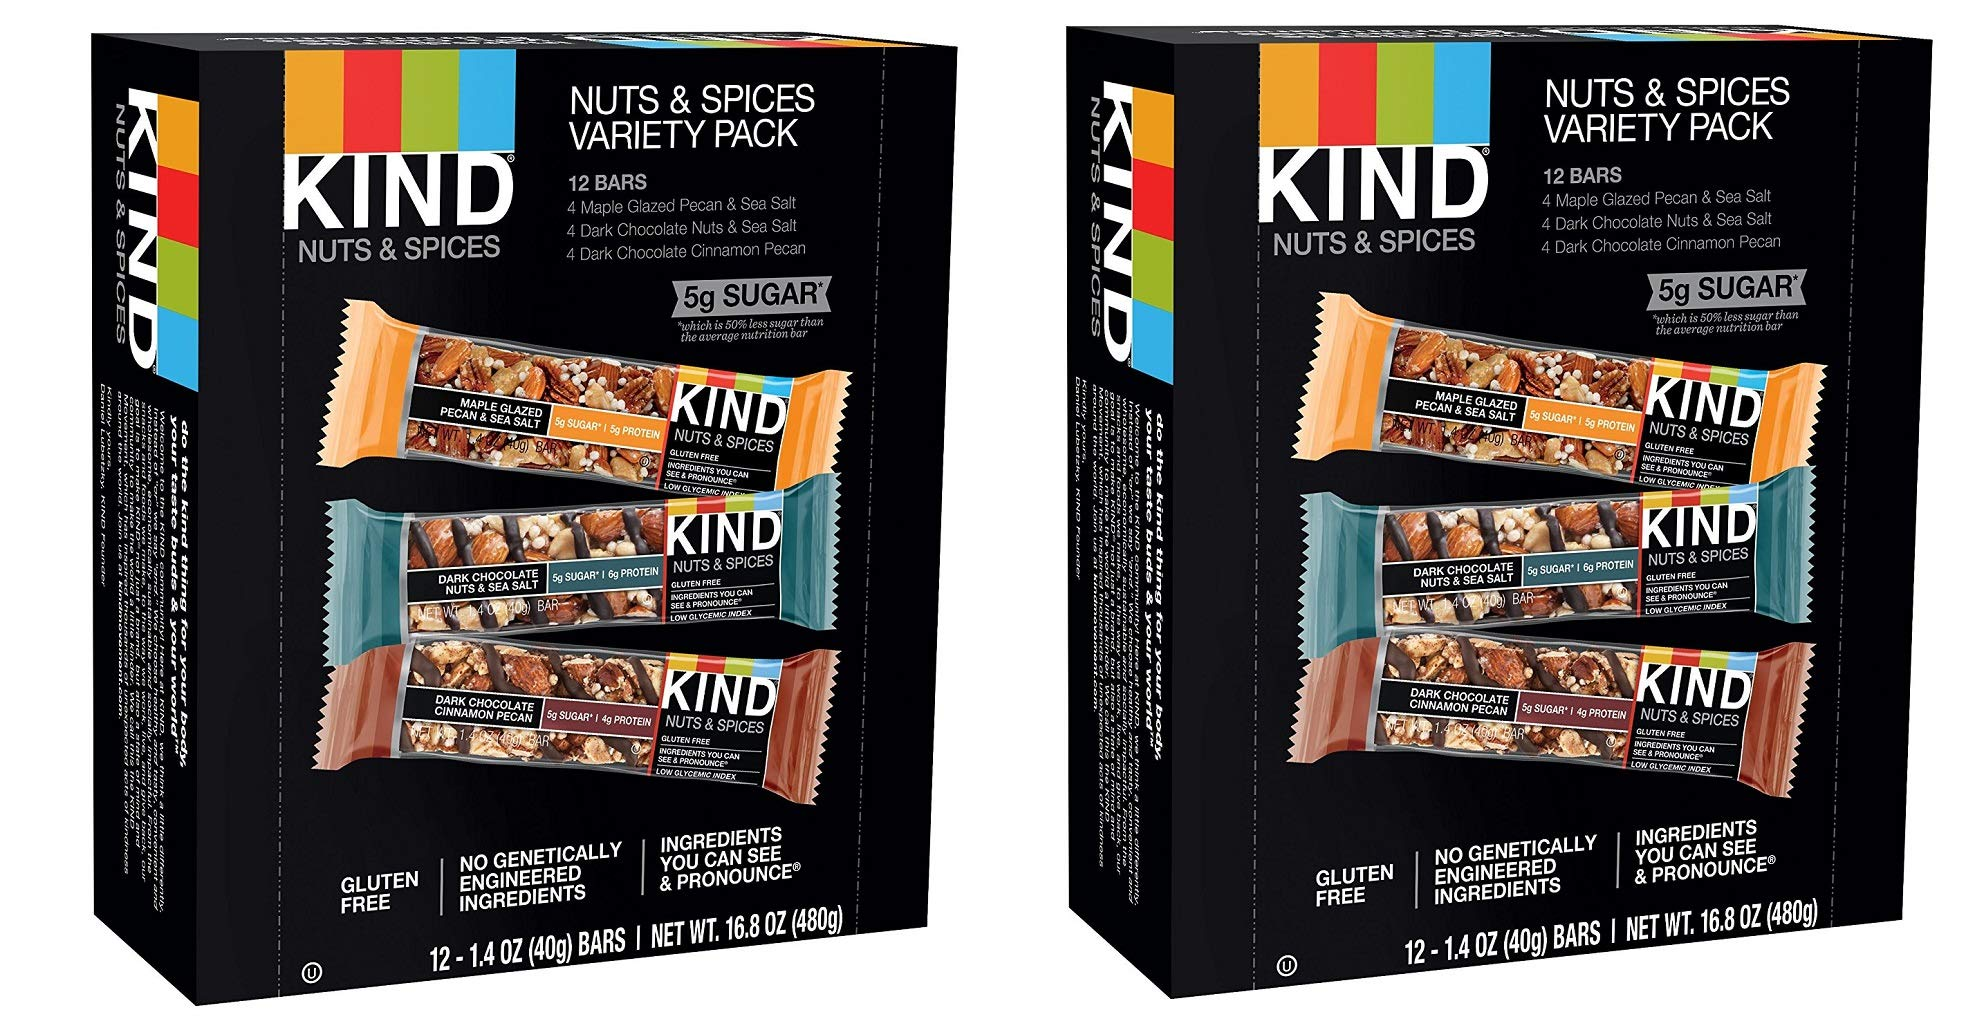 KIND Bars, Nuts and Spices Variety Pack, Gluten Free, 1.4oz (24 Bars) by  (Image #1)